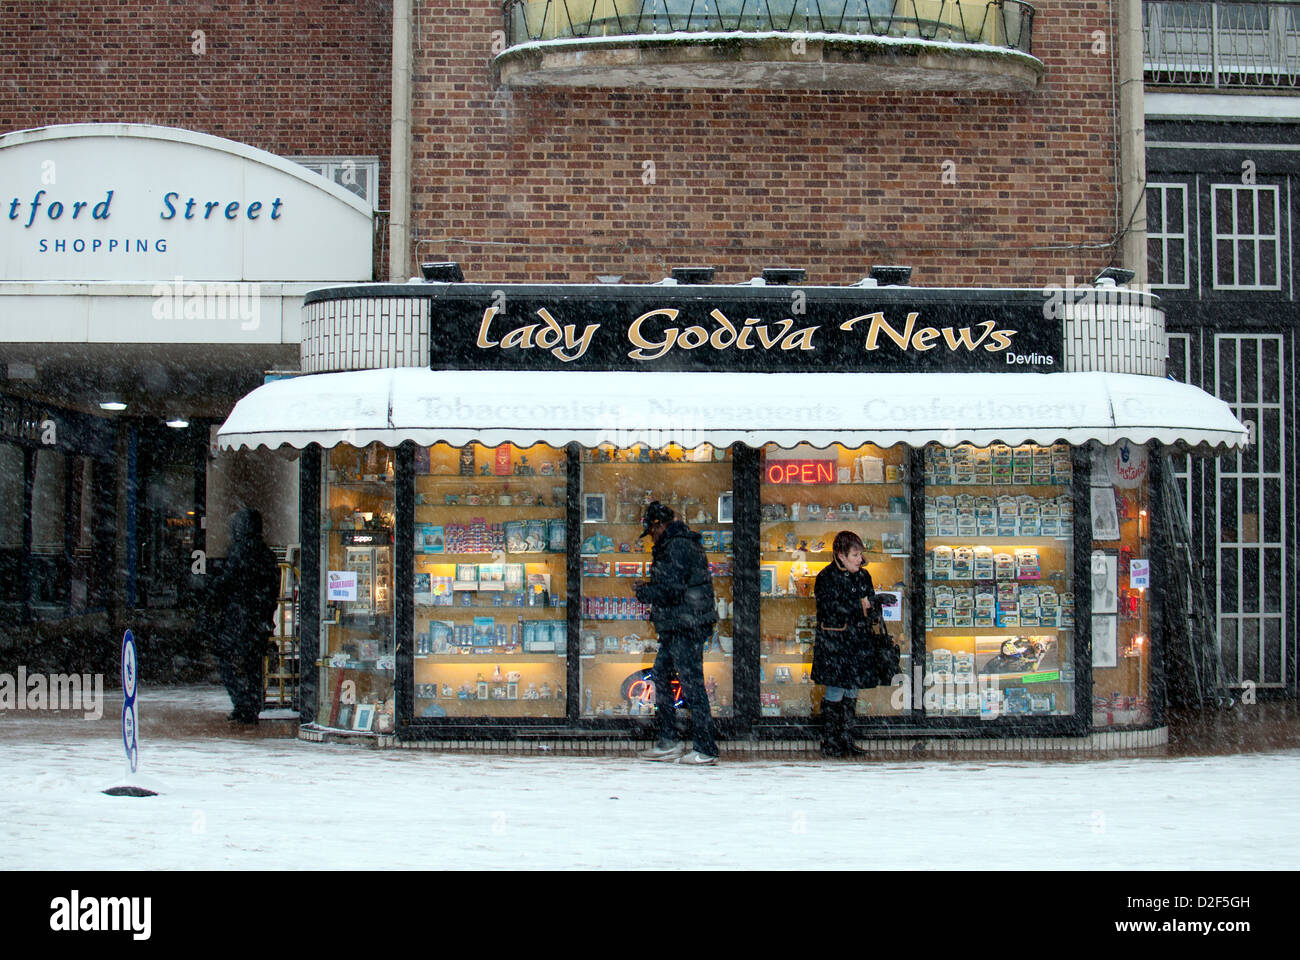 Newsagents shop, Broadgate, in snowy weather, Coventry, UK Stock Photo